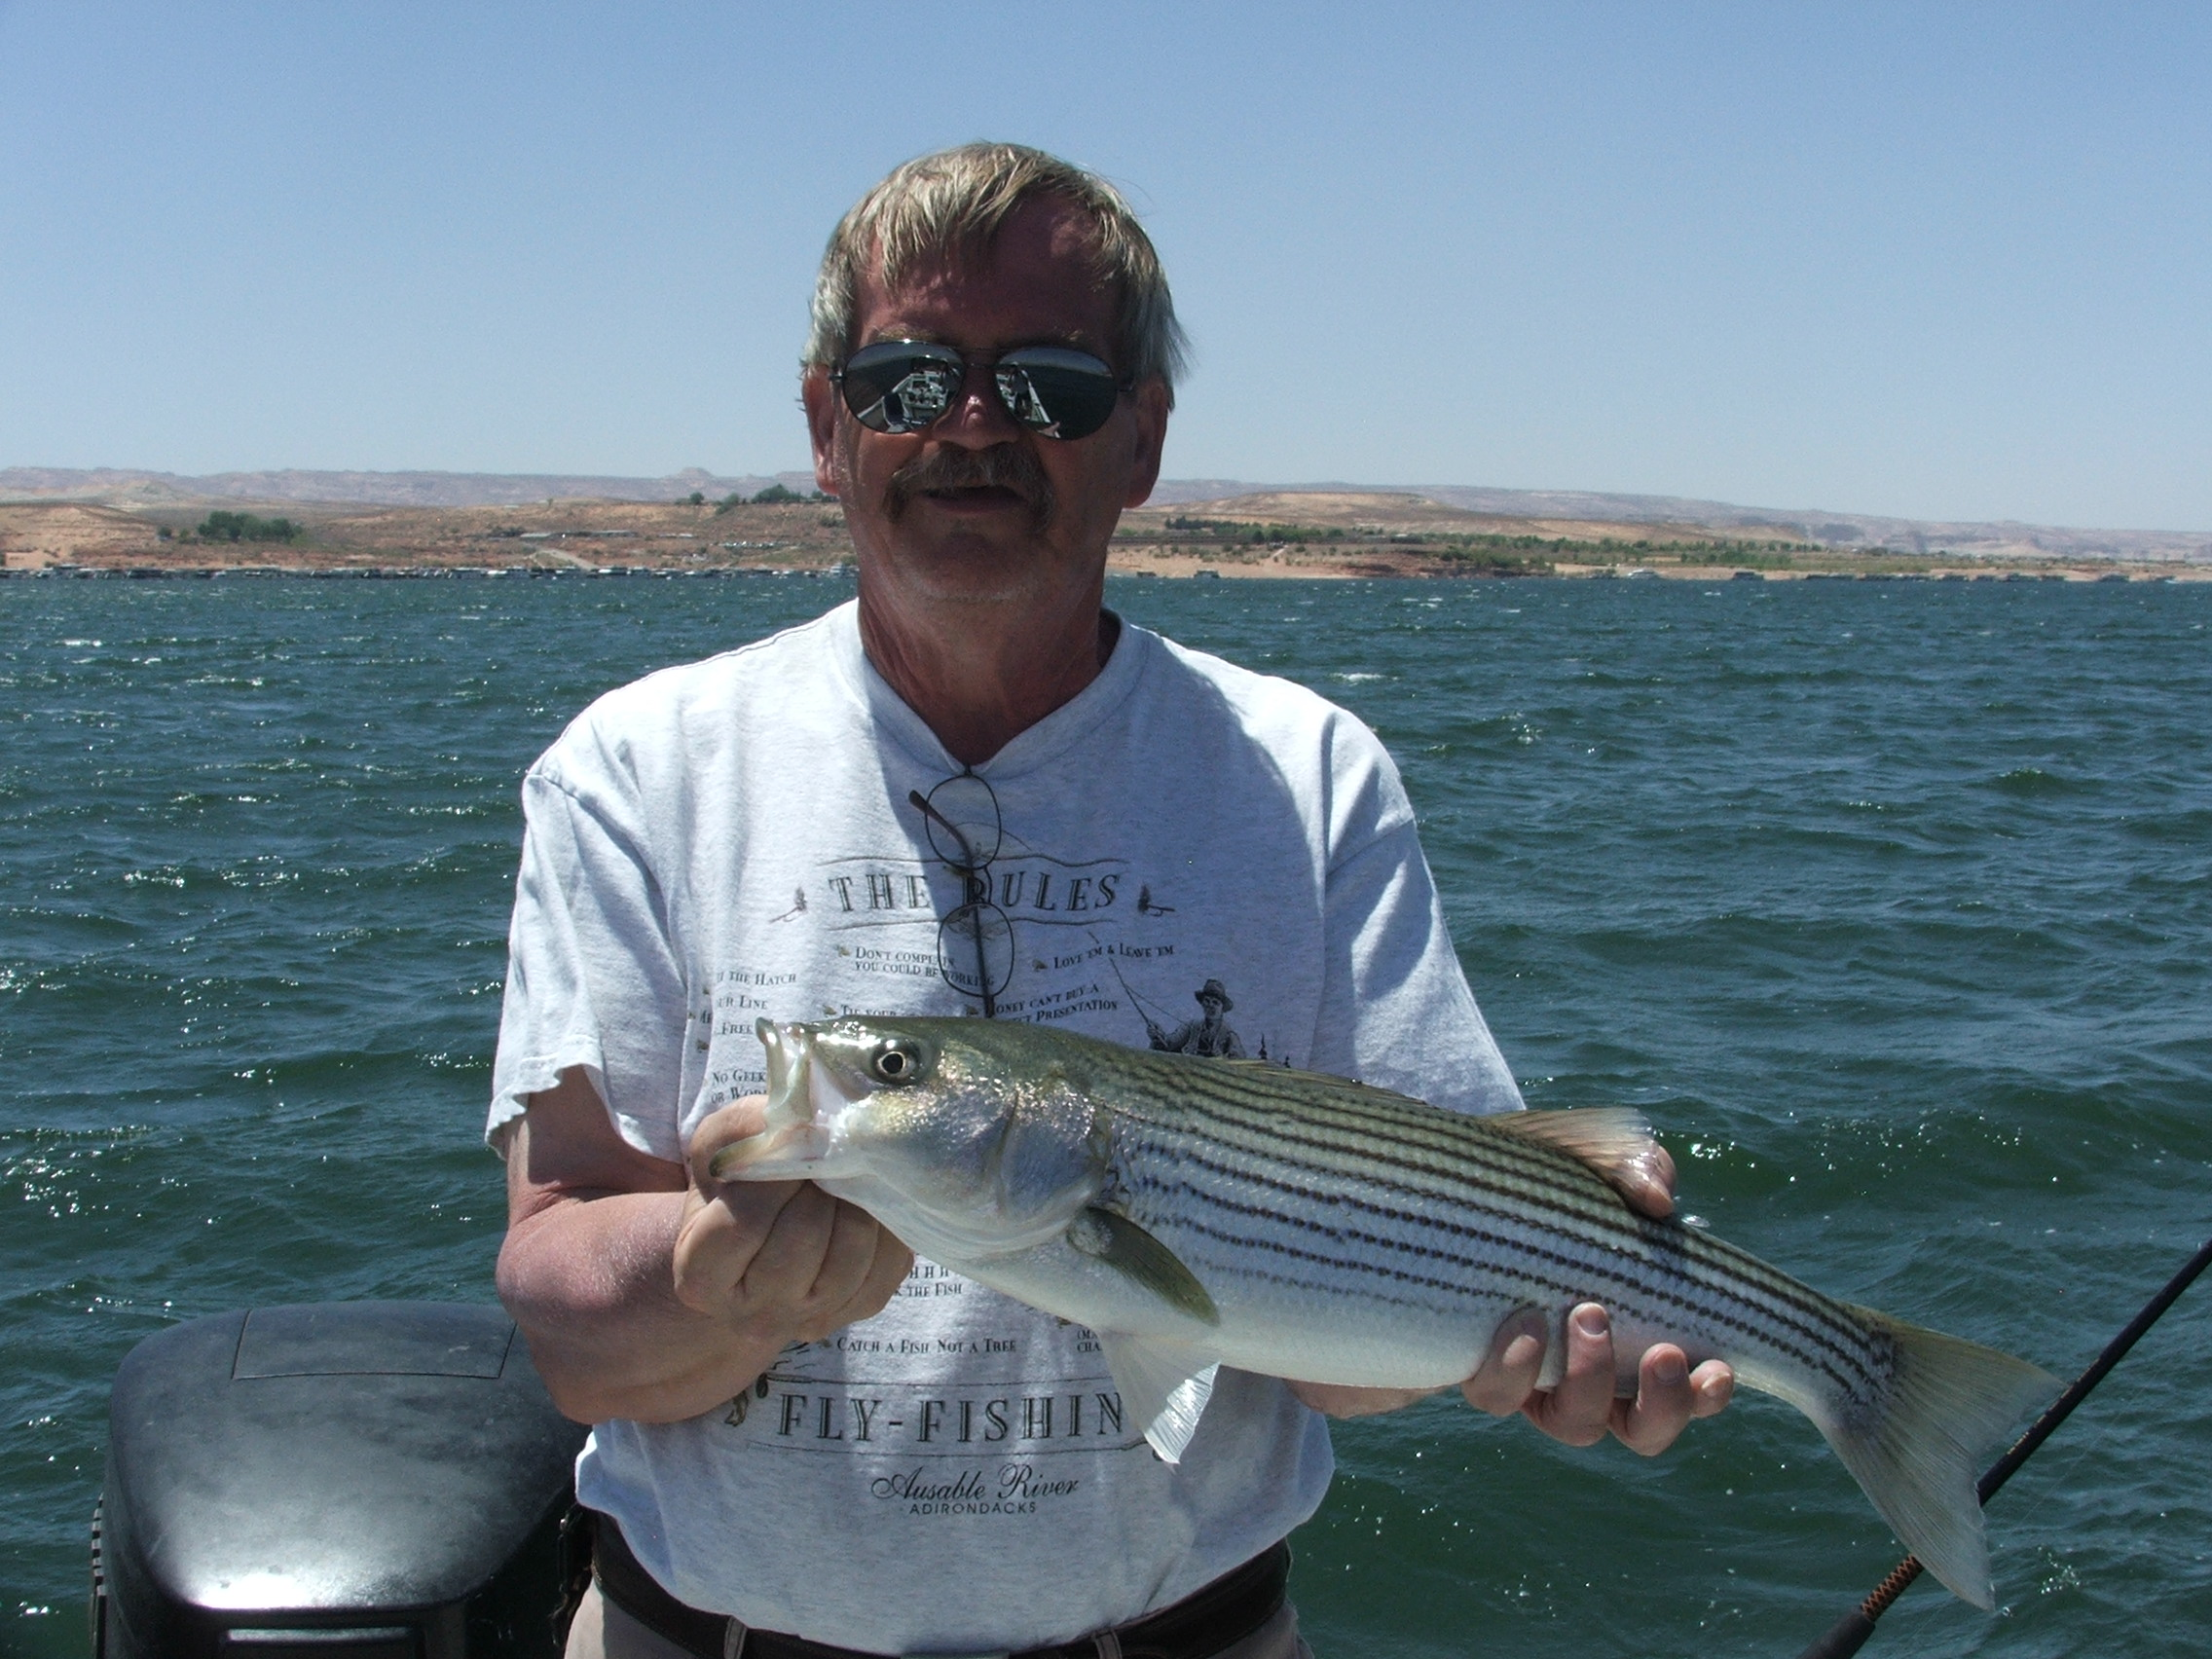 Lake powell fishing report 6 09 12 ambassador guides at for Lake powell fishing license